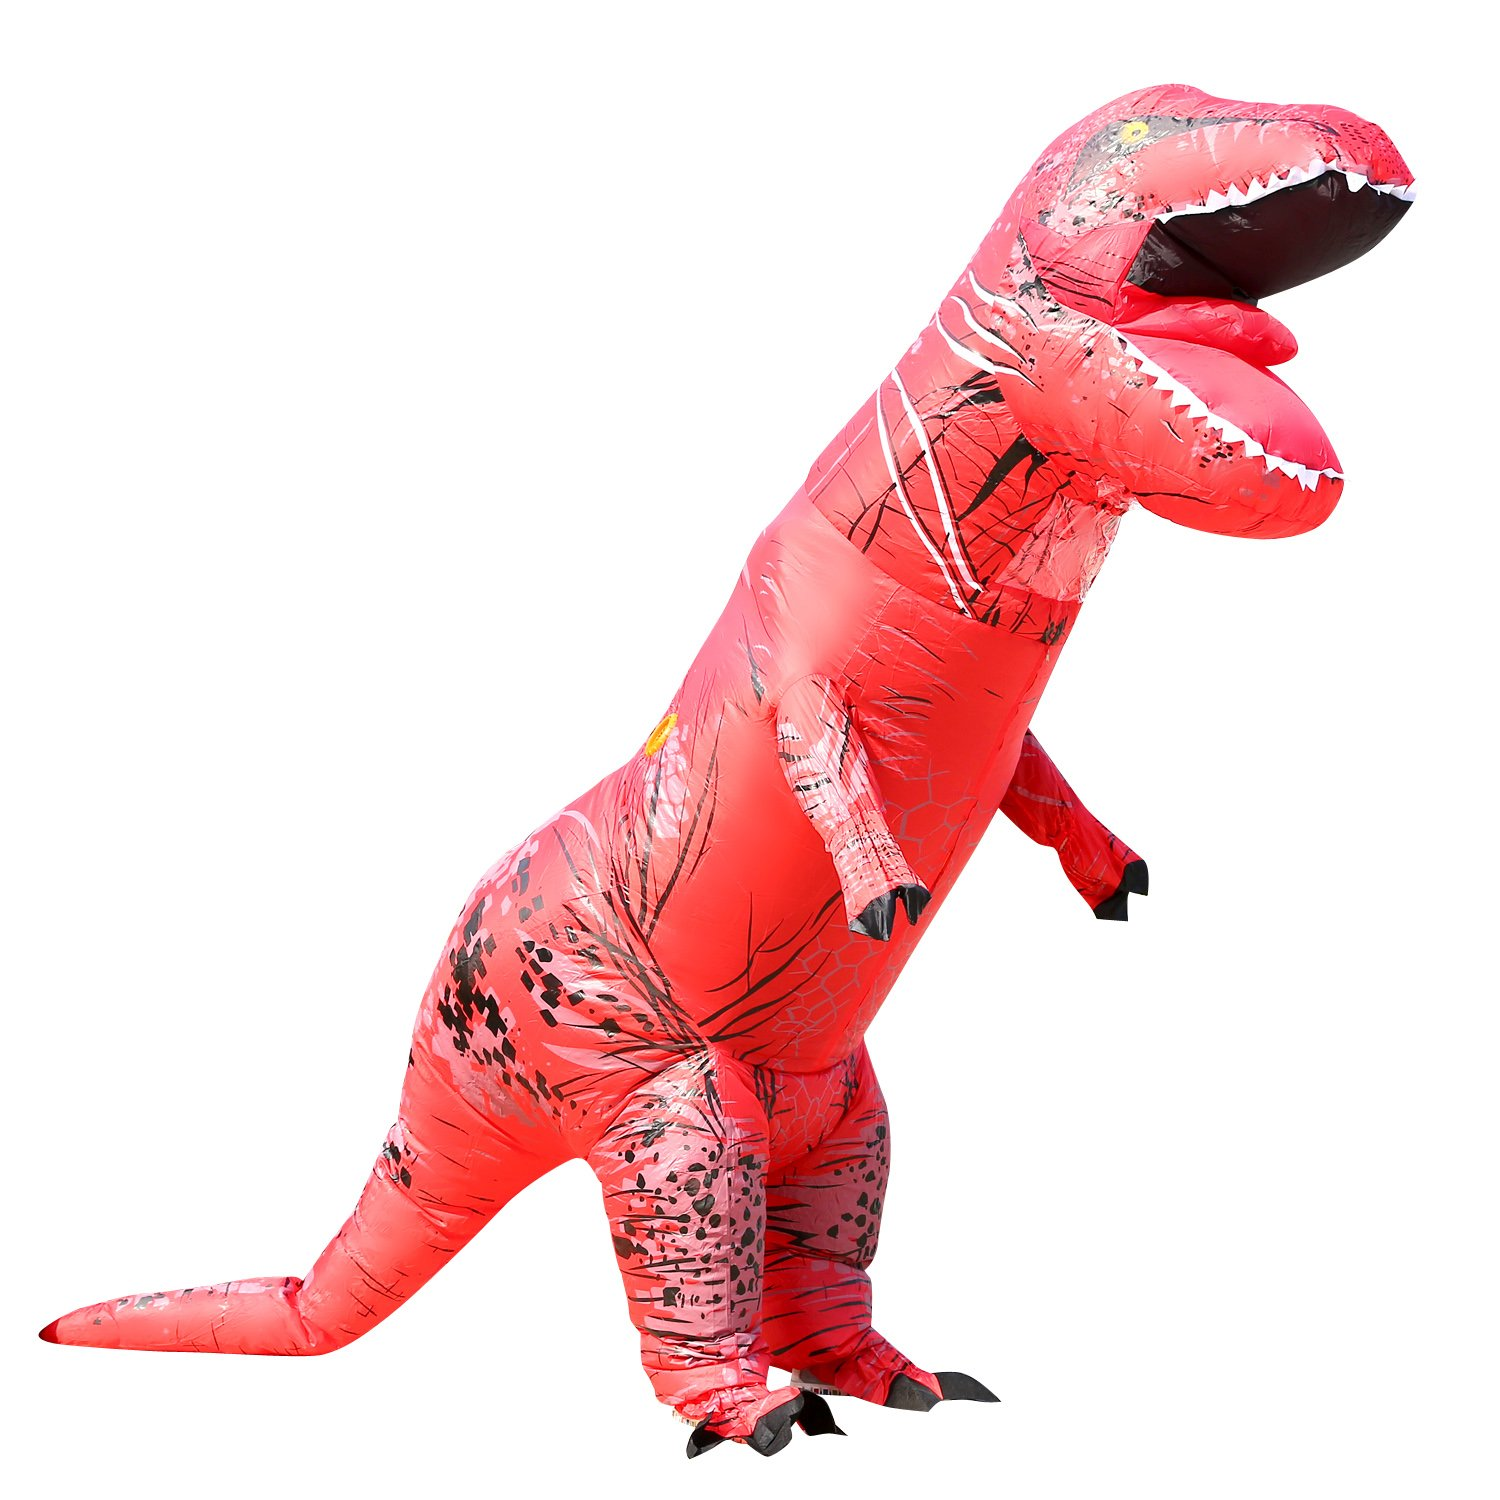 Ladyker T-Rex Dinosaur Inflatable Costume for Unisex Adults Teens Blowup Fancy Outfit Red